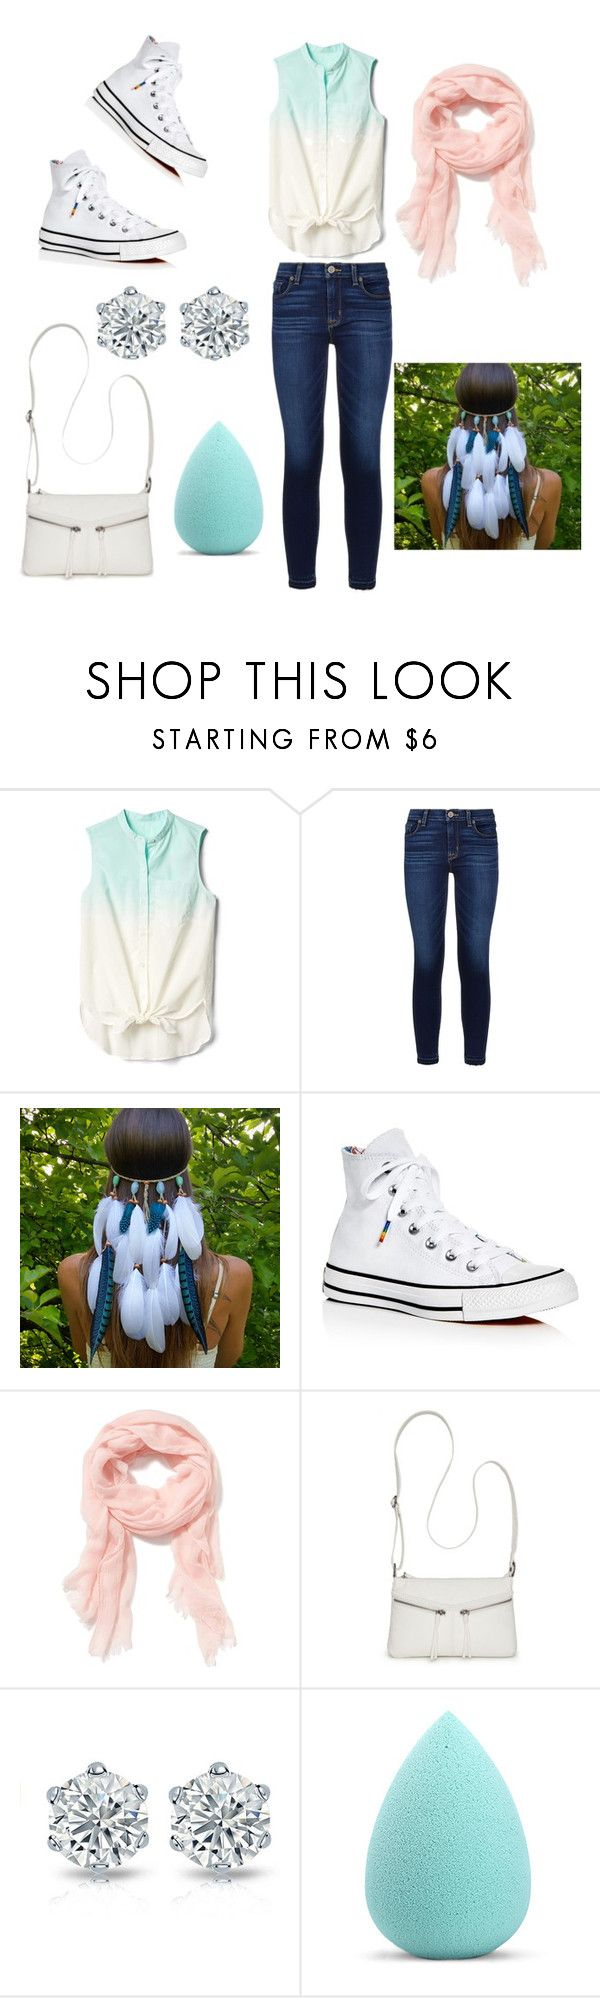 """""""Maximonous #4"""" by maya2005 ❤ liked on Polyvore featuring Gap, Hudson, Converse, Old Navy, Bueno and My Makeup Brush Set"""